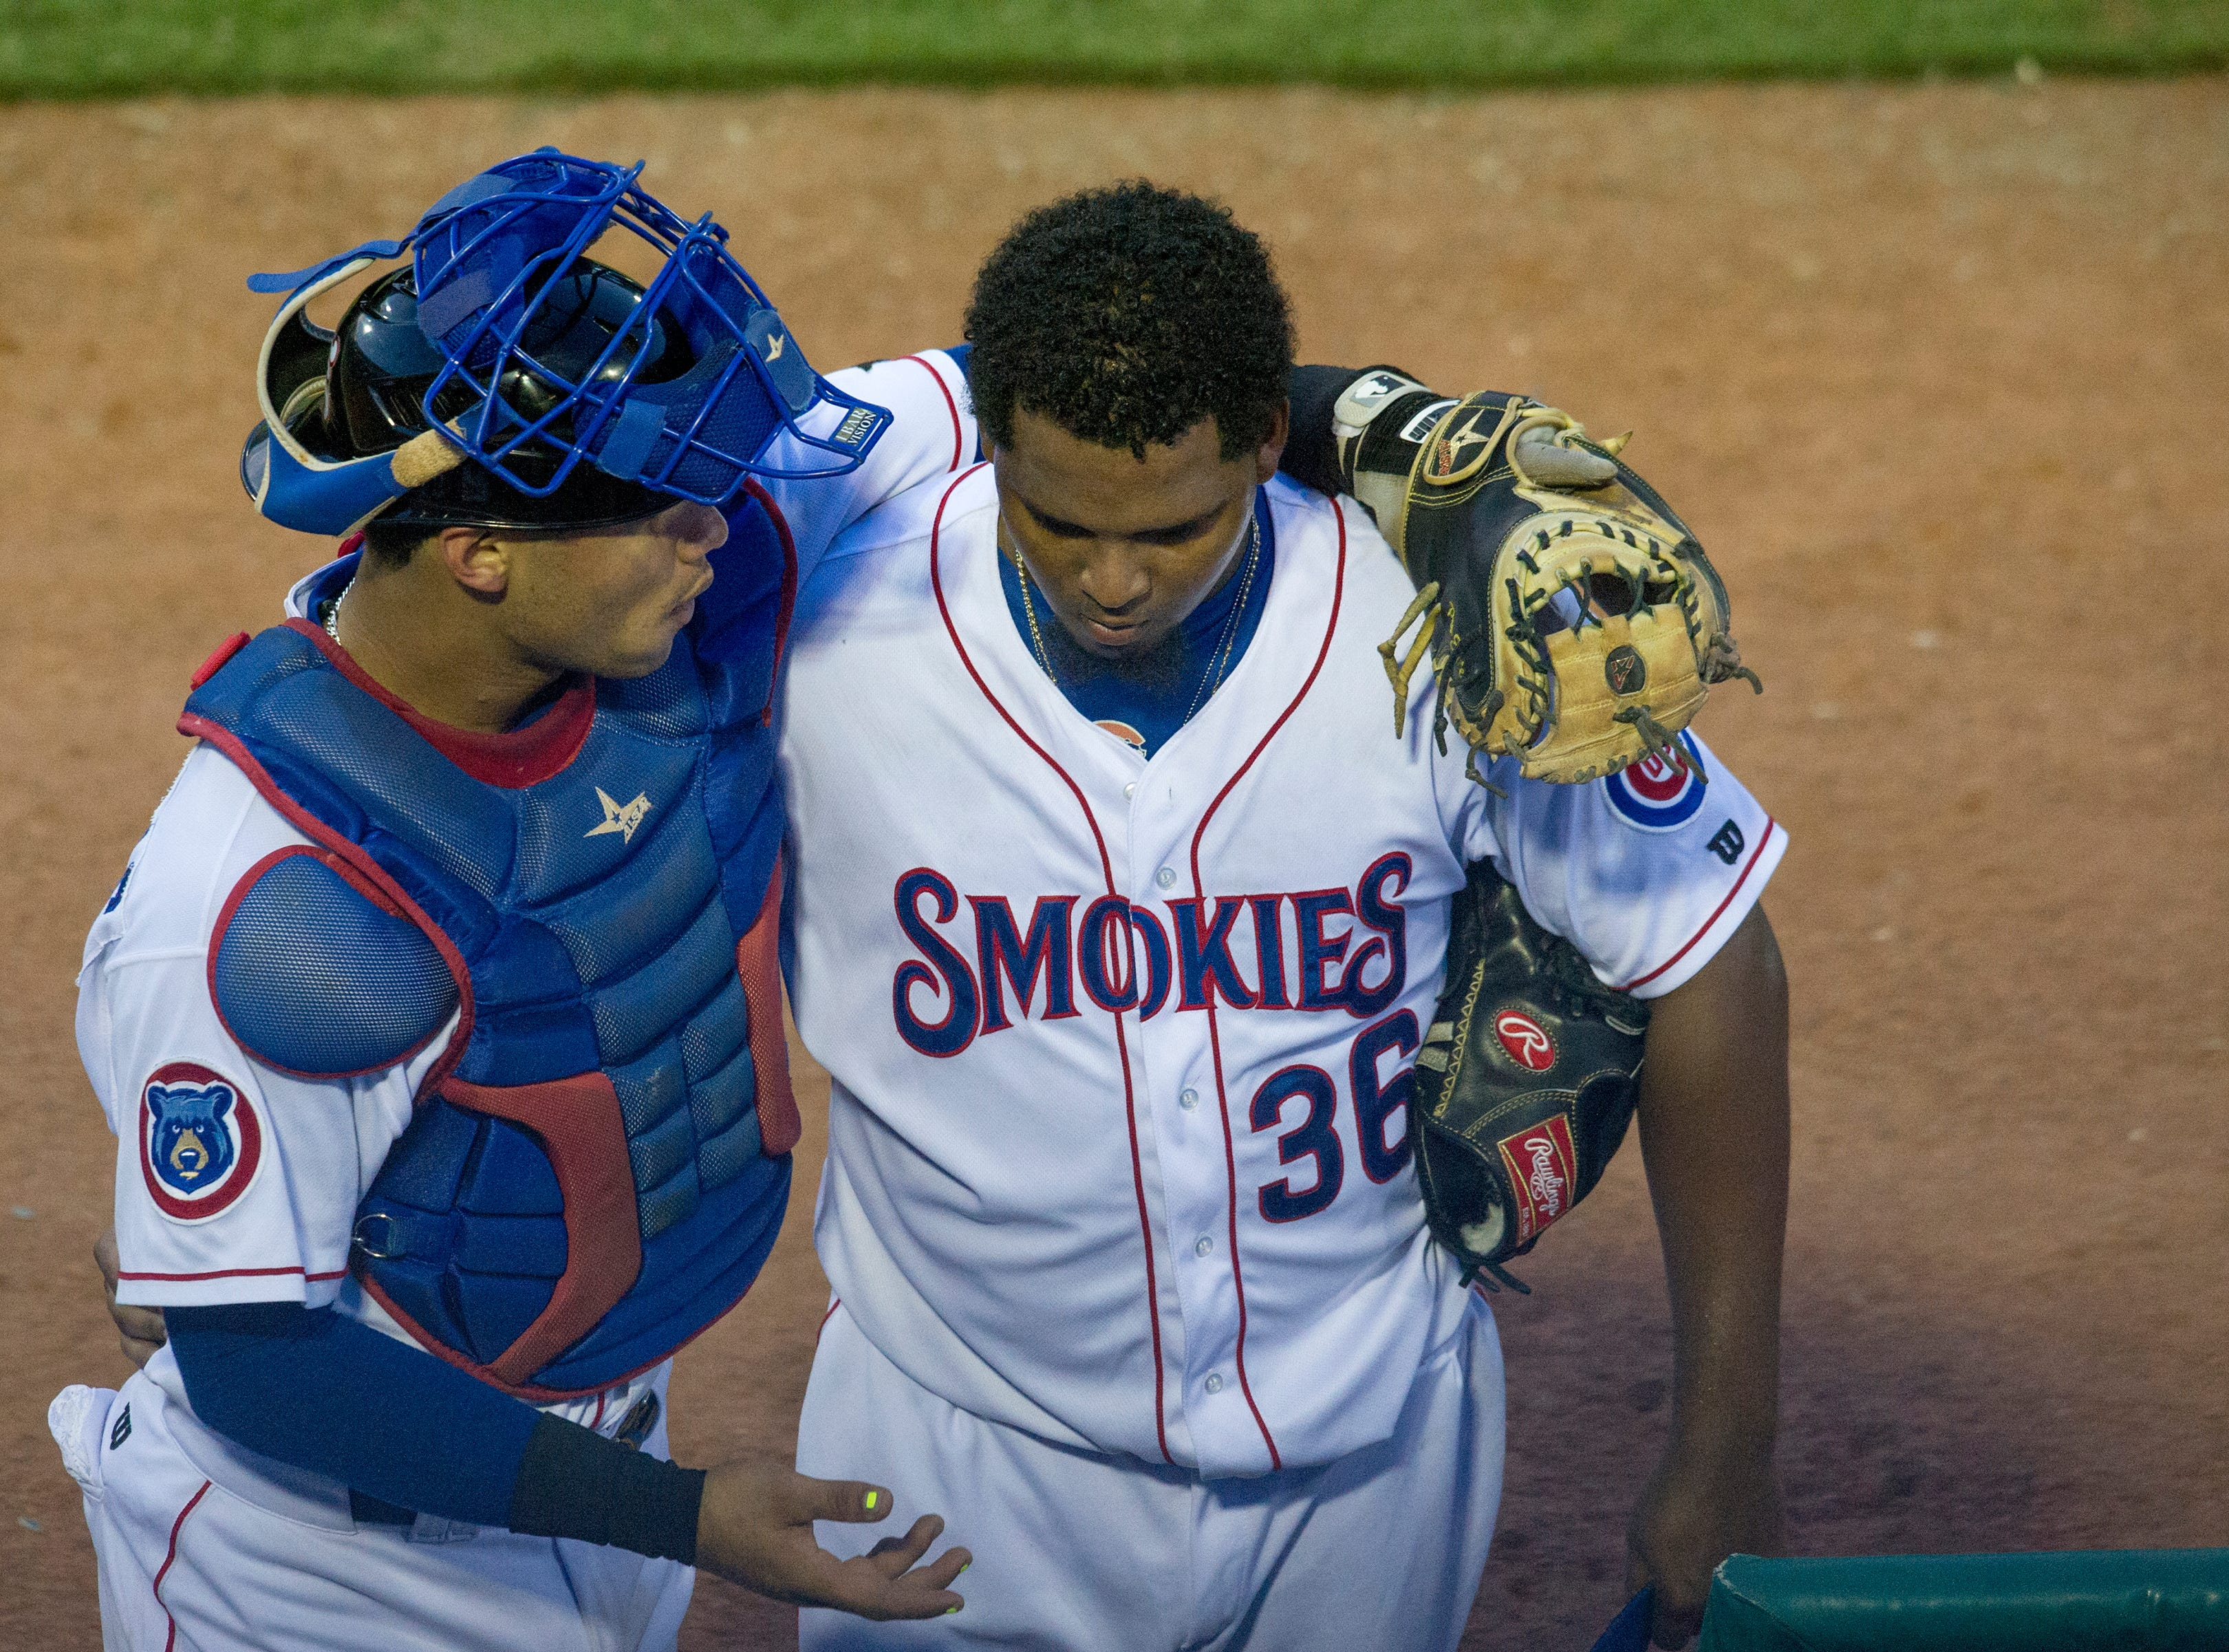 The Smokies catcher Willson Contreras (left) talks with pitcher Jeffry Antigua during the Tennessee Smokies versus the Jacksonville Suns baseball game at Smokies Stadium in Kodak Tuesday, Sep. 1, 2015. The team's final home game was fan appreciation themed.